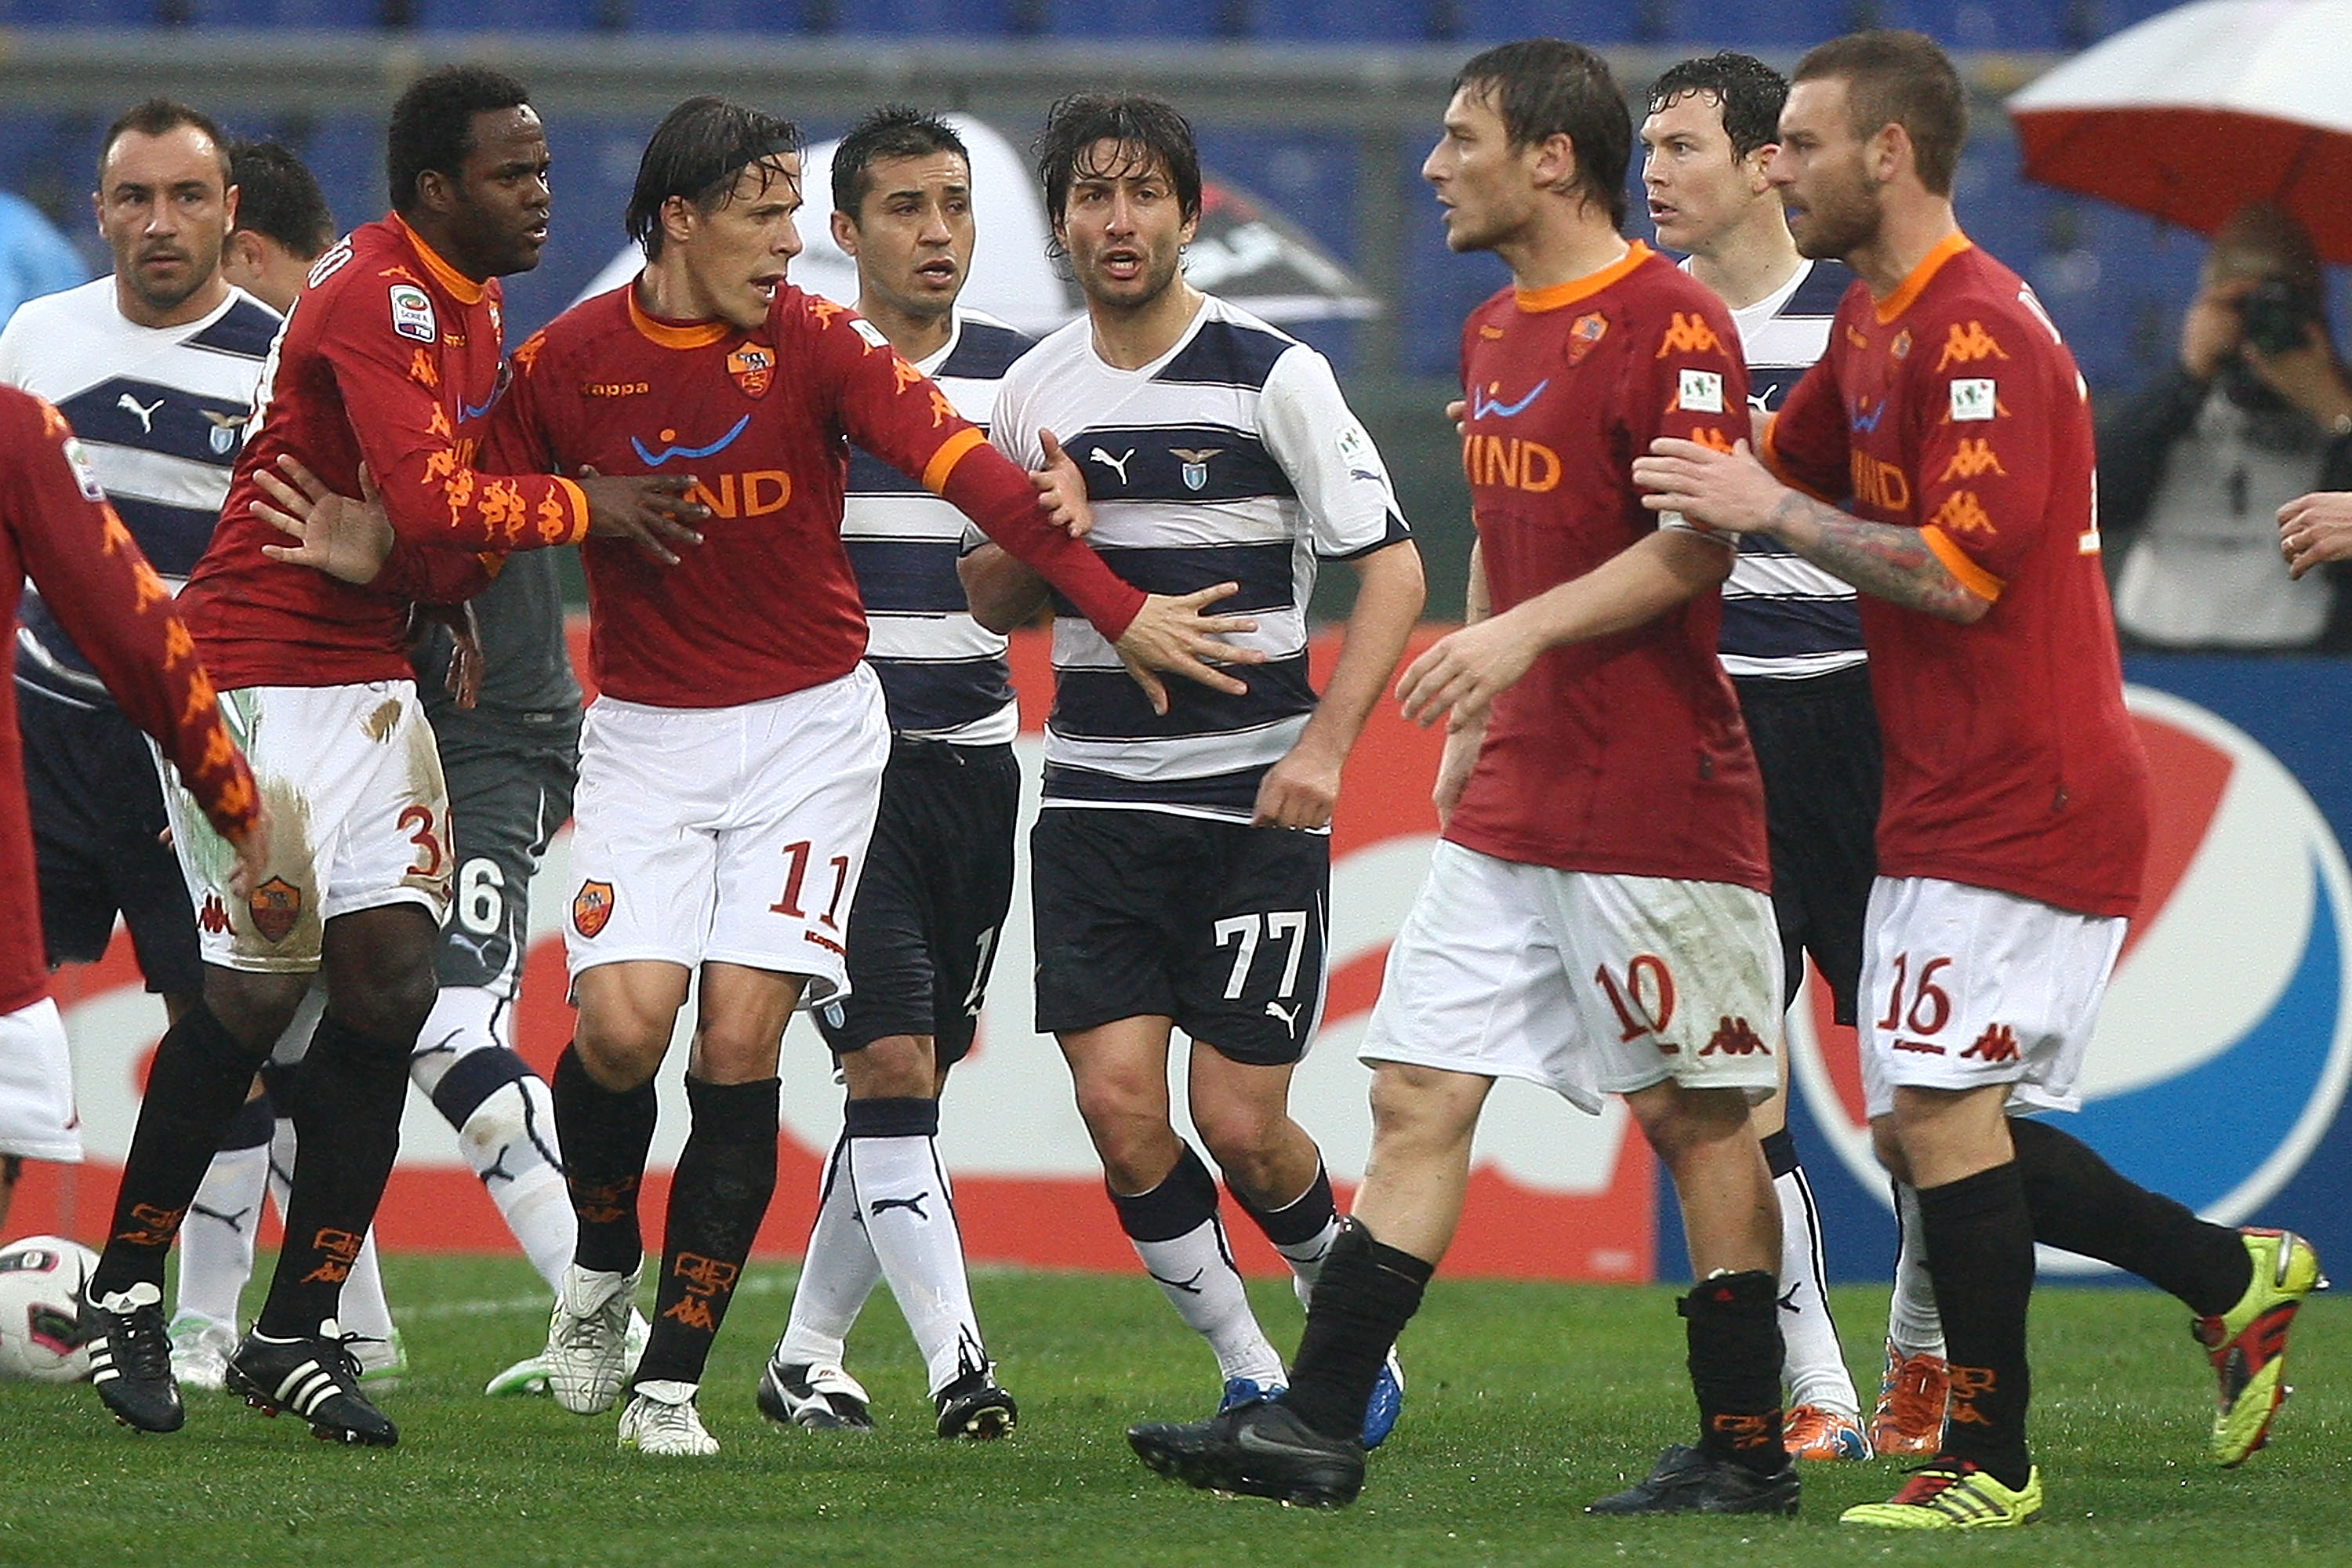 ROME, ITALY - MARCH 13: Francesco Totti (2nd-R) and Daniele De Rossi (R) with his teammates Rodrigo Taddei #11 and Simplicio #30 of AS Roma argue with  players of SS Lazio during Serie A match between AS Roma and SS Lazio at Stadio Olimpico on March 13, 2